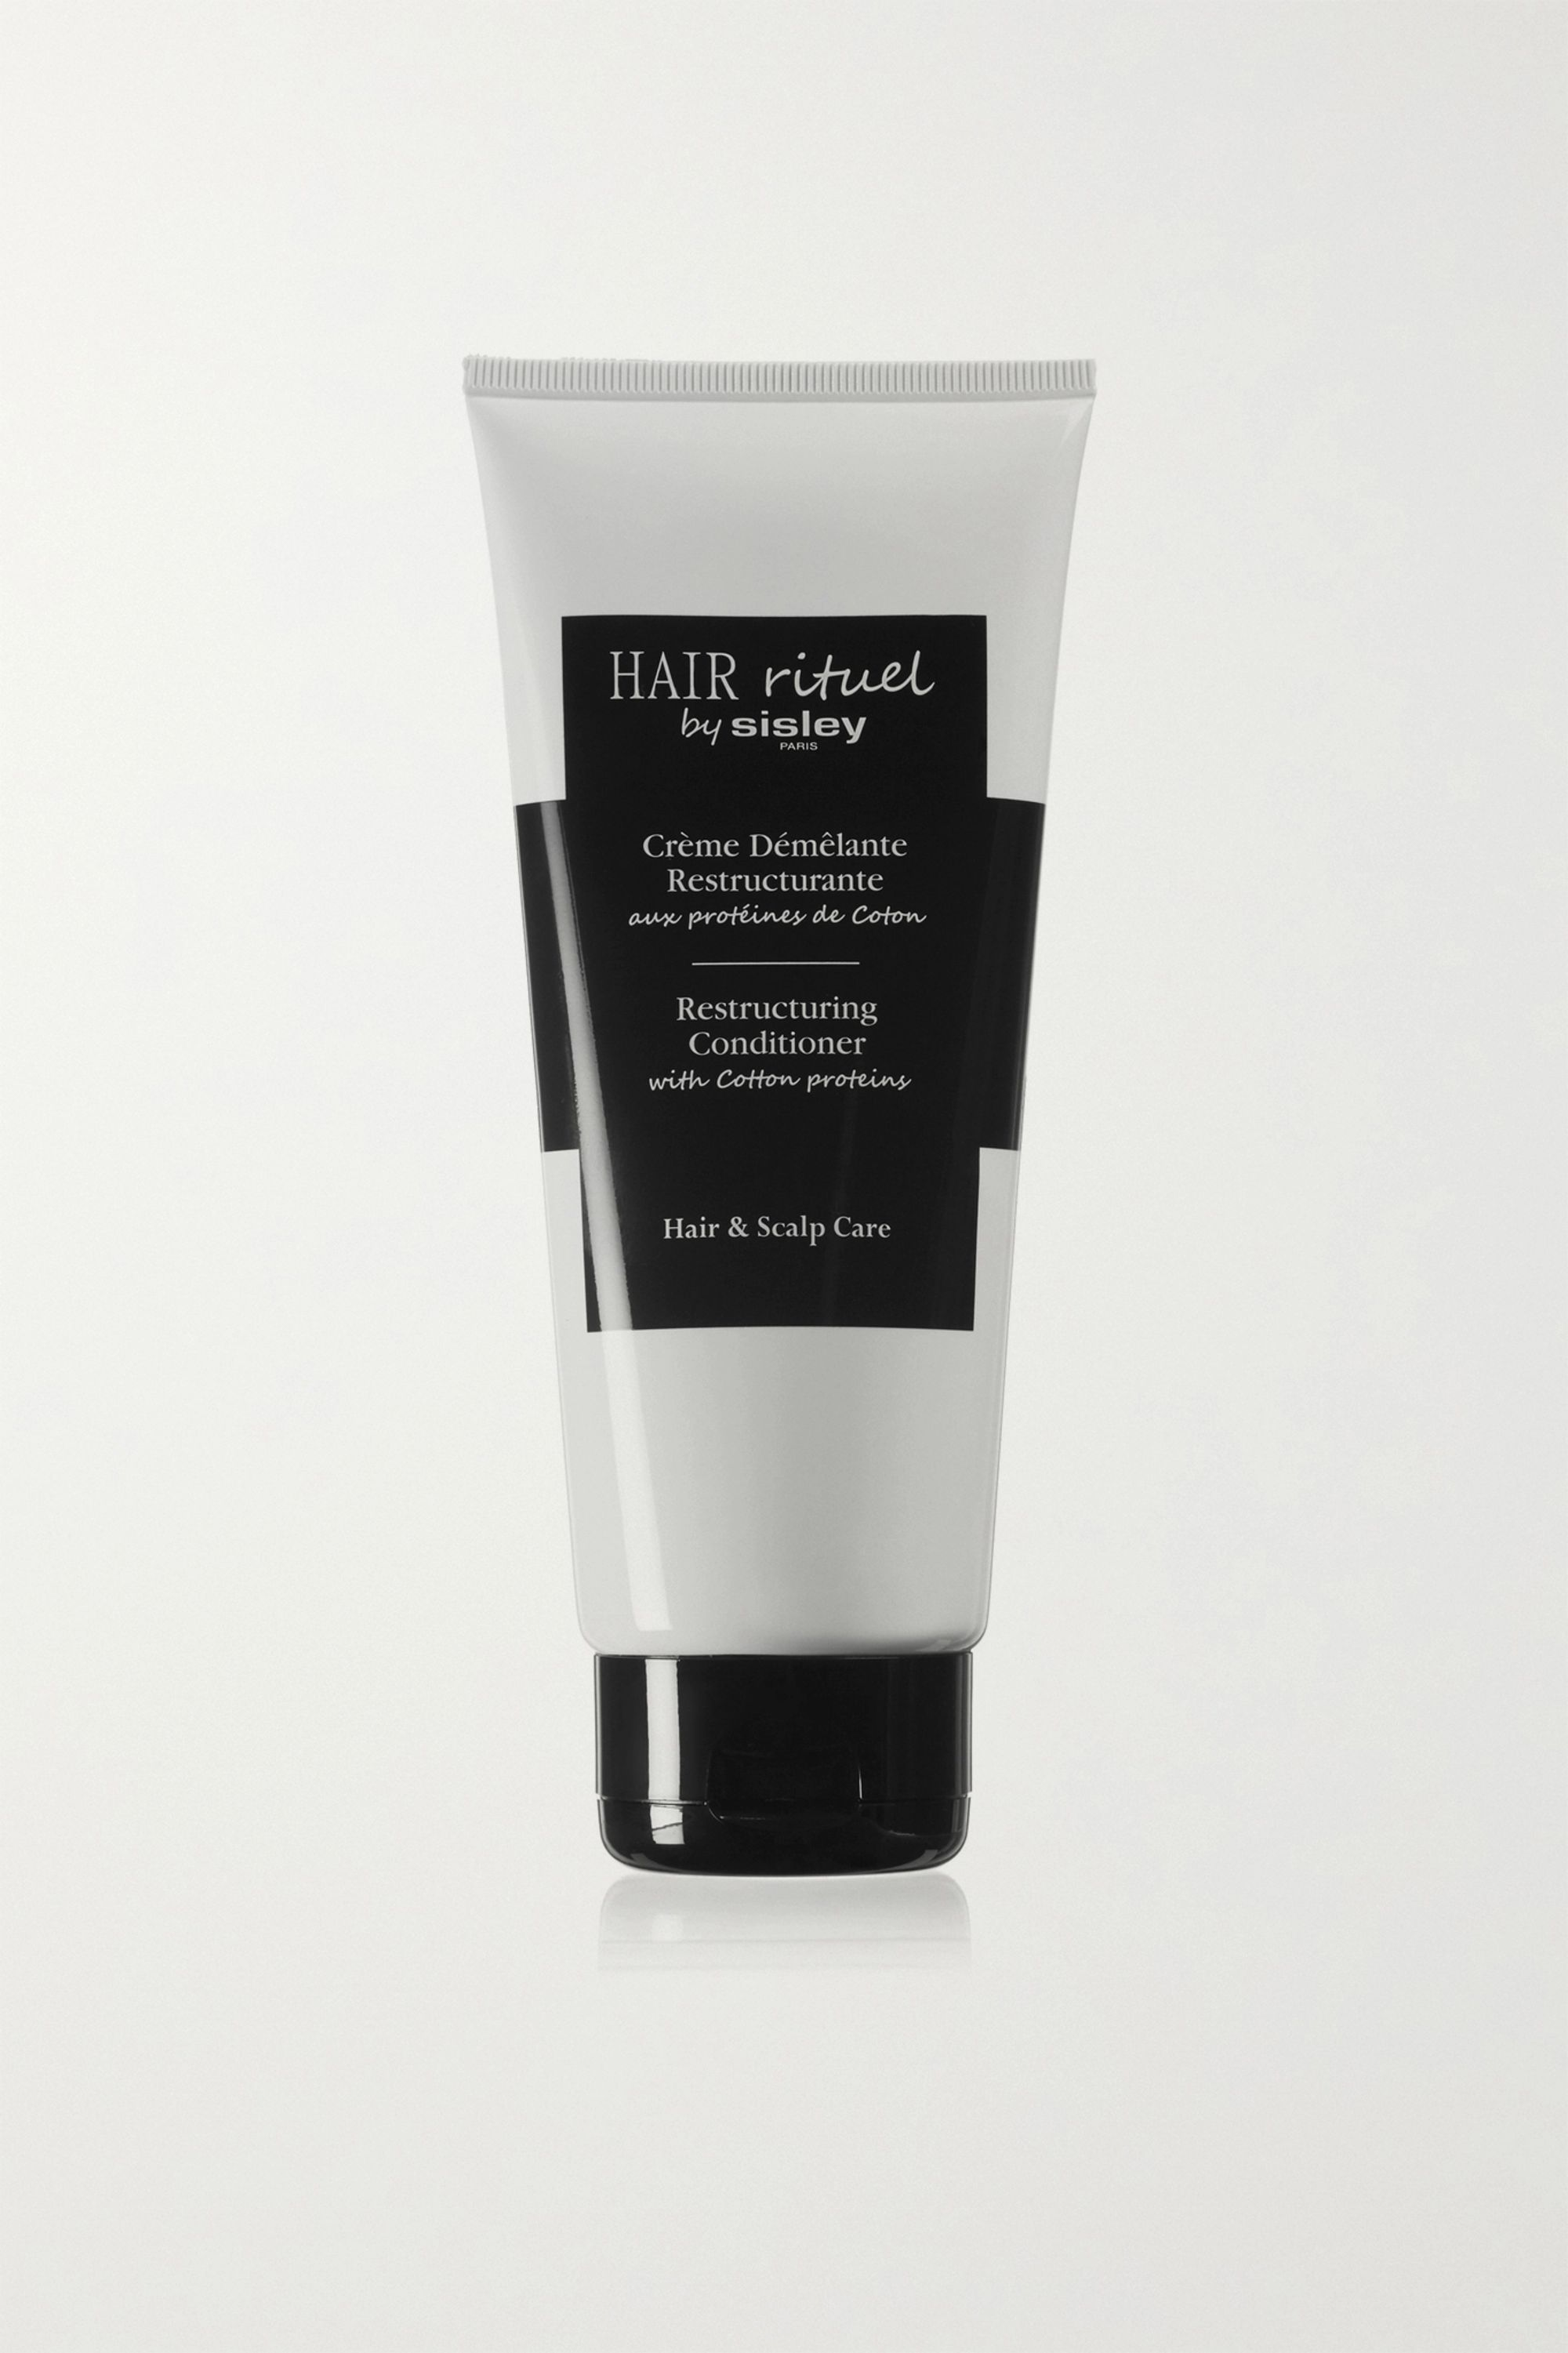 Sisley Restructuring Conditioner with Cotton Proteins, 200ml